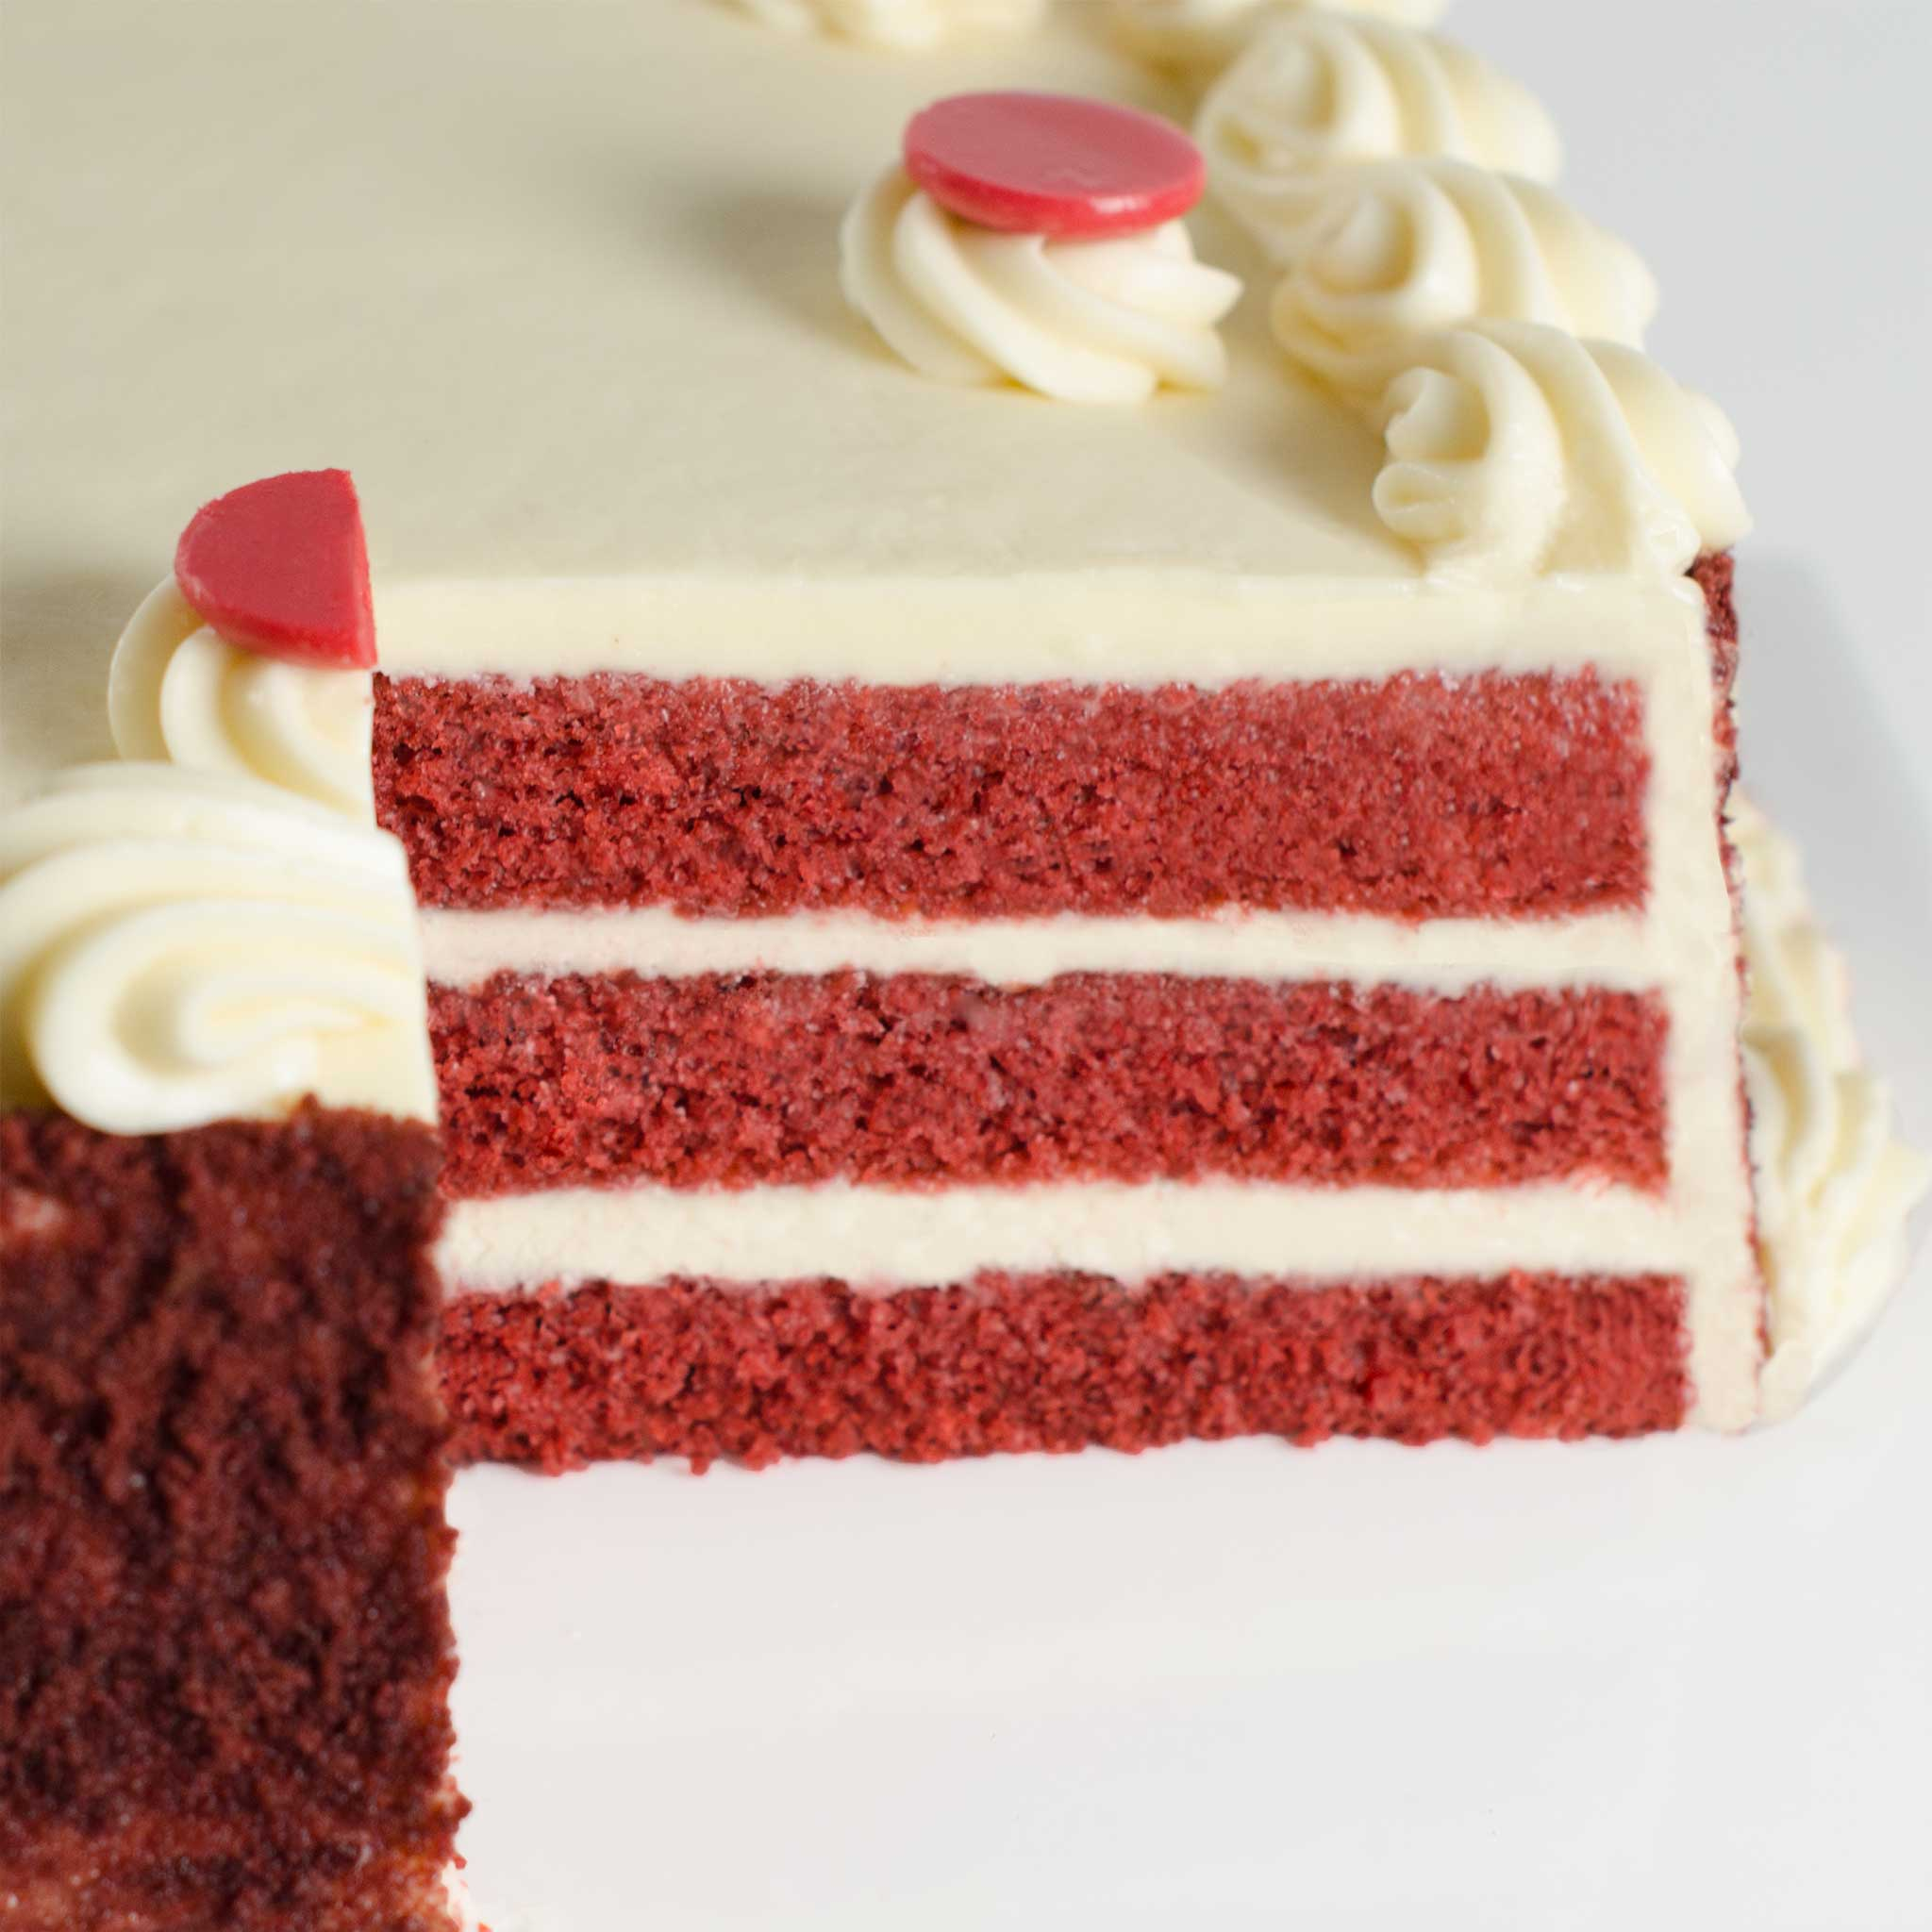 La Rocca Red Velvet Celebration Cake - Detail